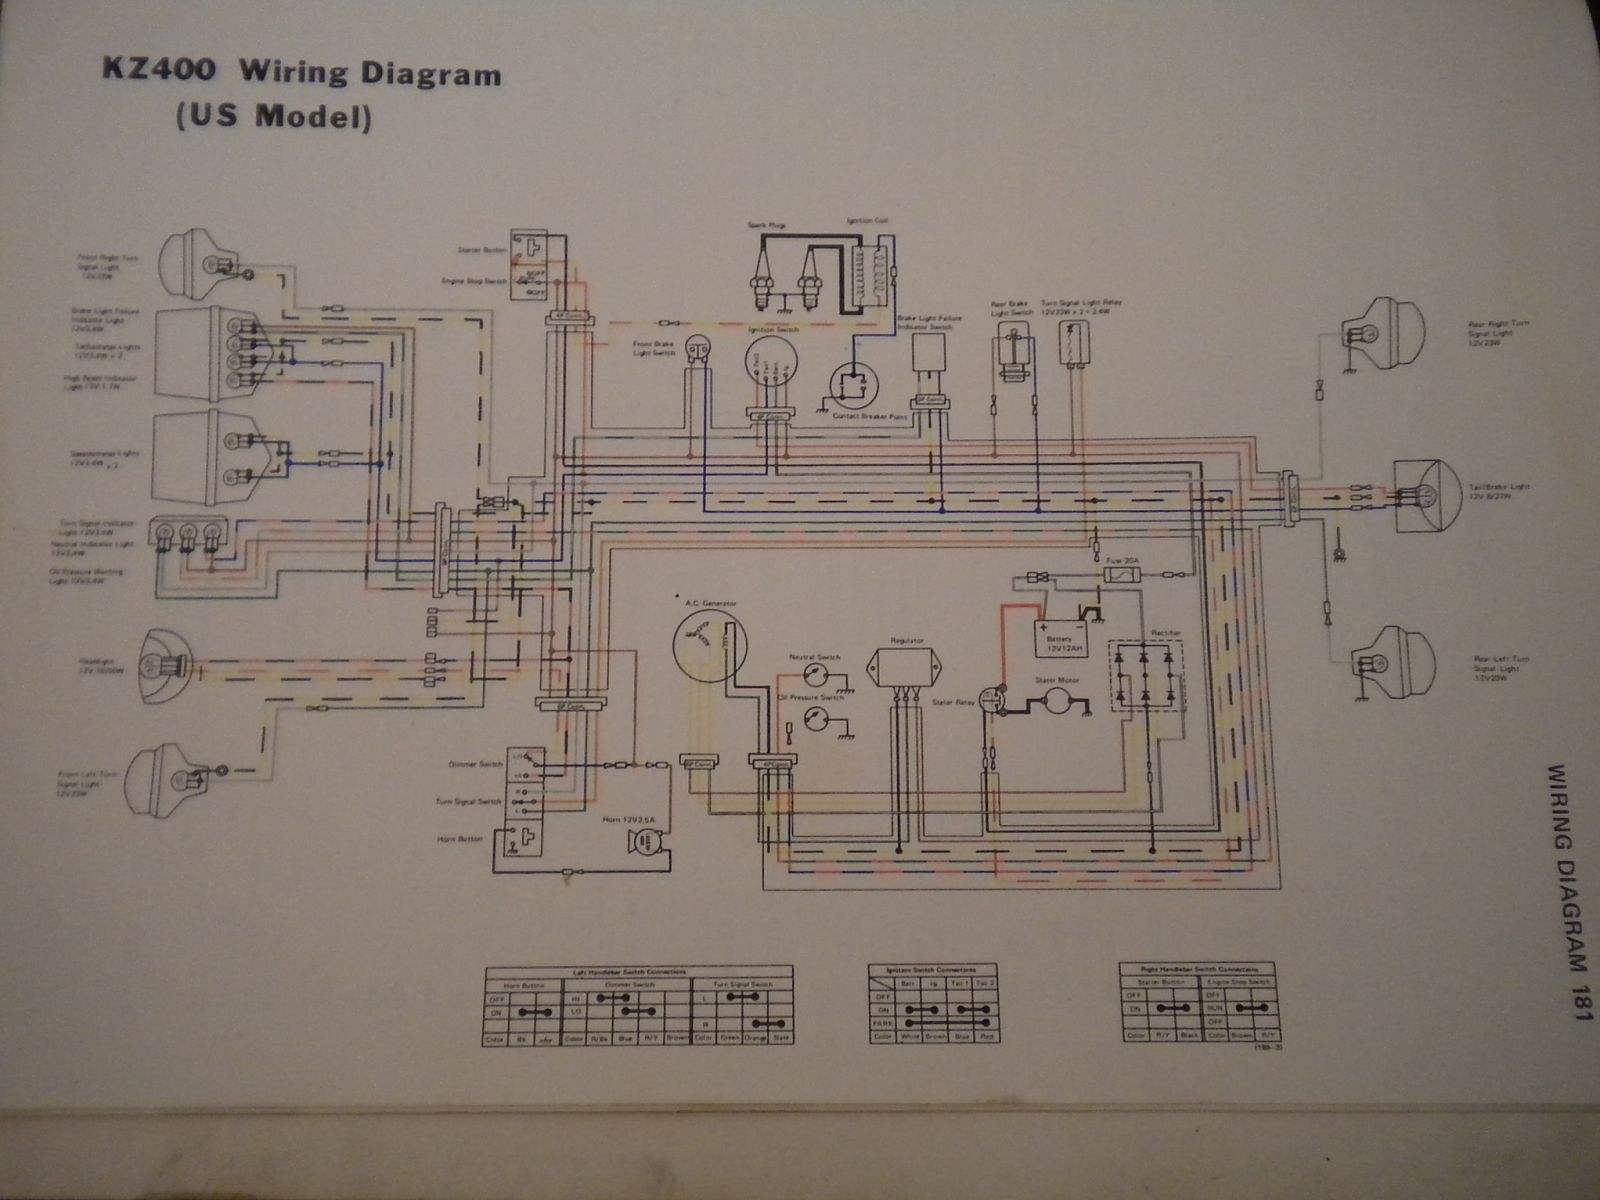 81 kz440 wiring diagram